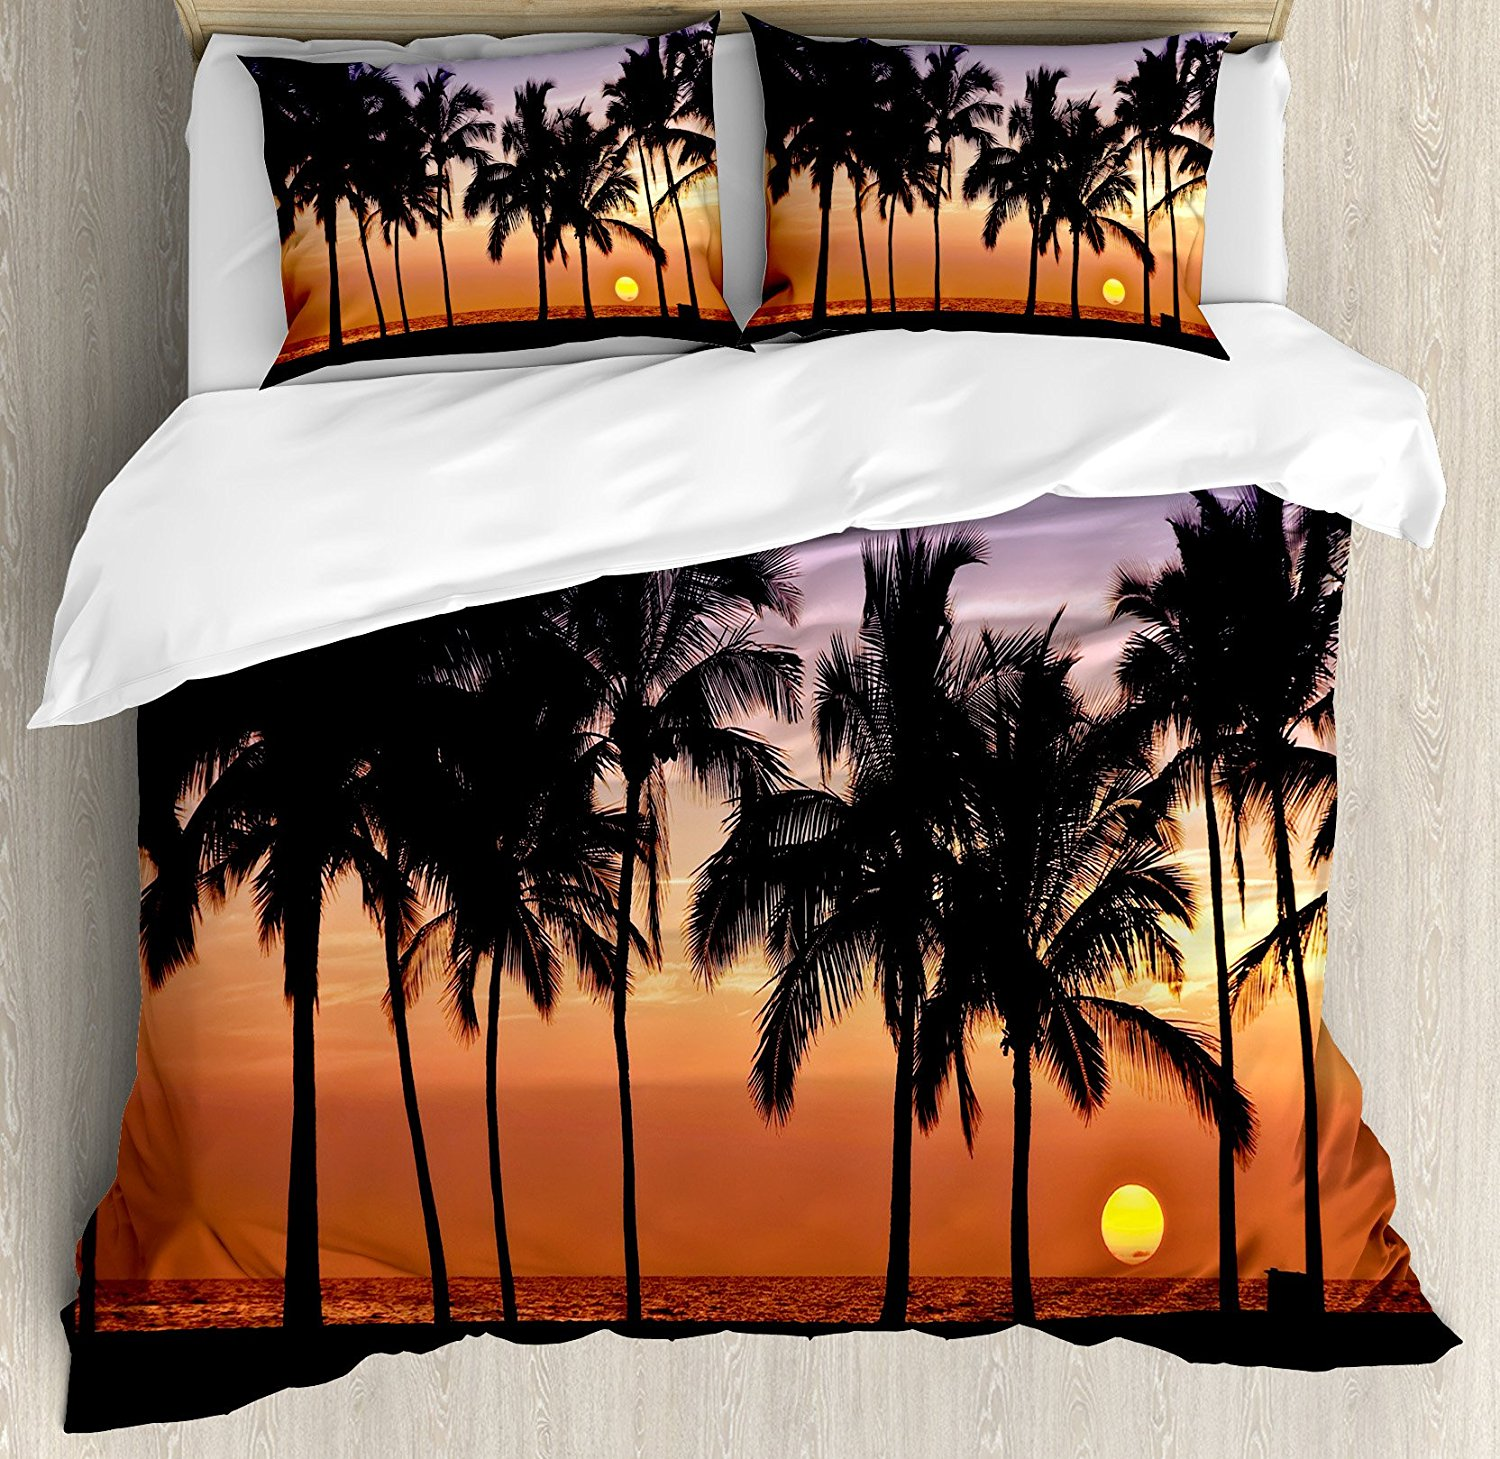 Duvet Cover Set Hawaiian Sunset on Big Island Anaehoomalu Bay Tropic Horizon Ocean Romantic Resort, 4 Piece Bedding Set